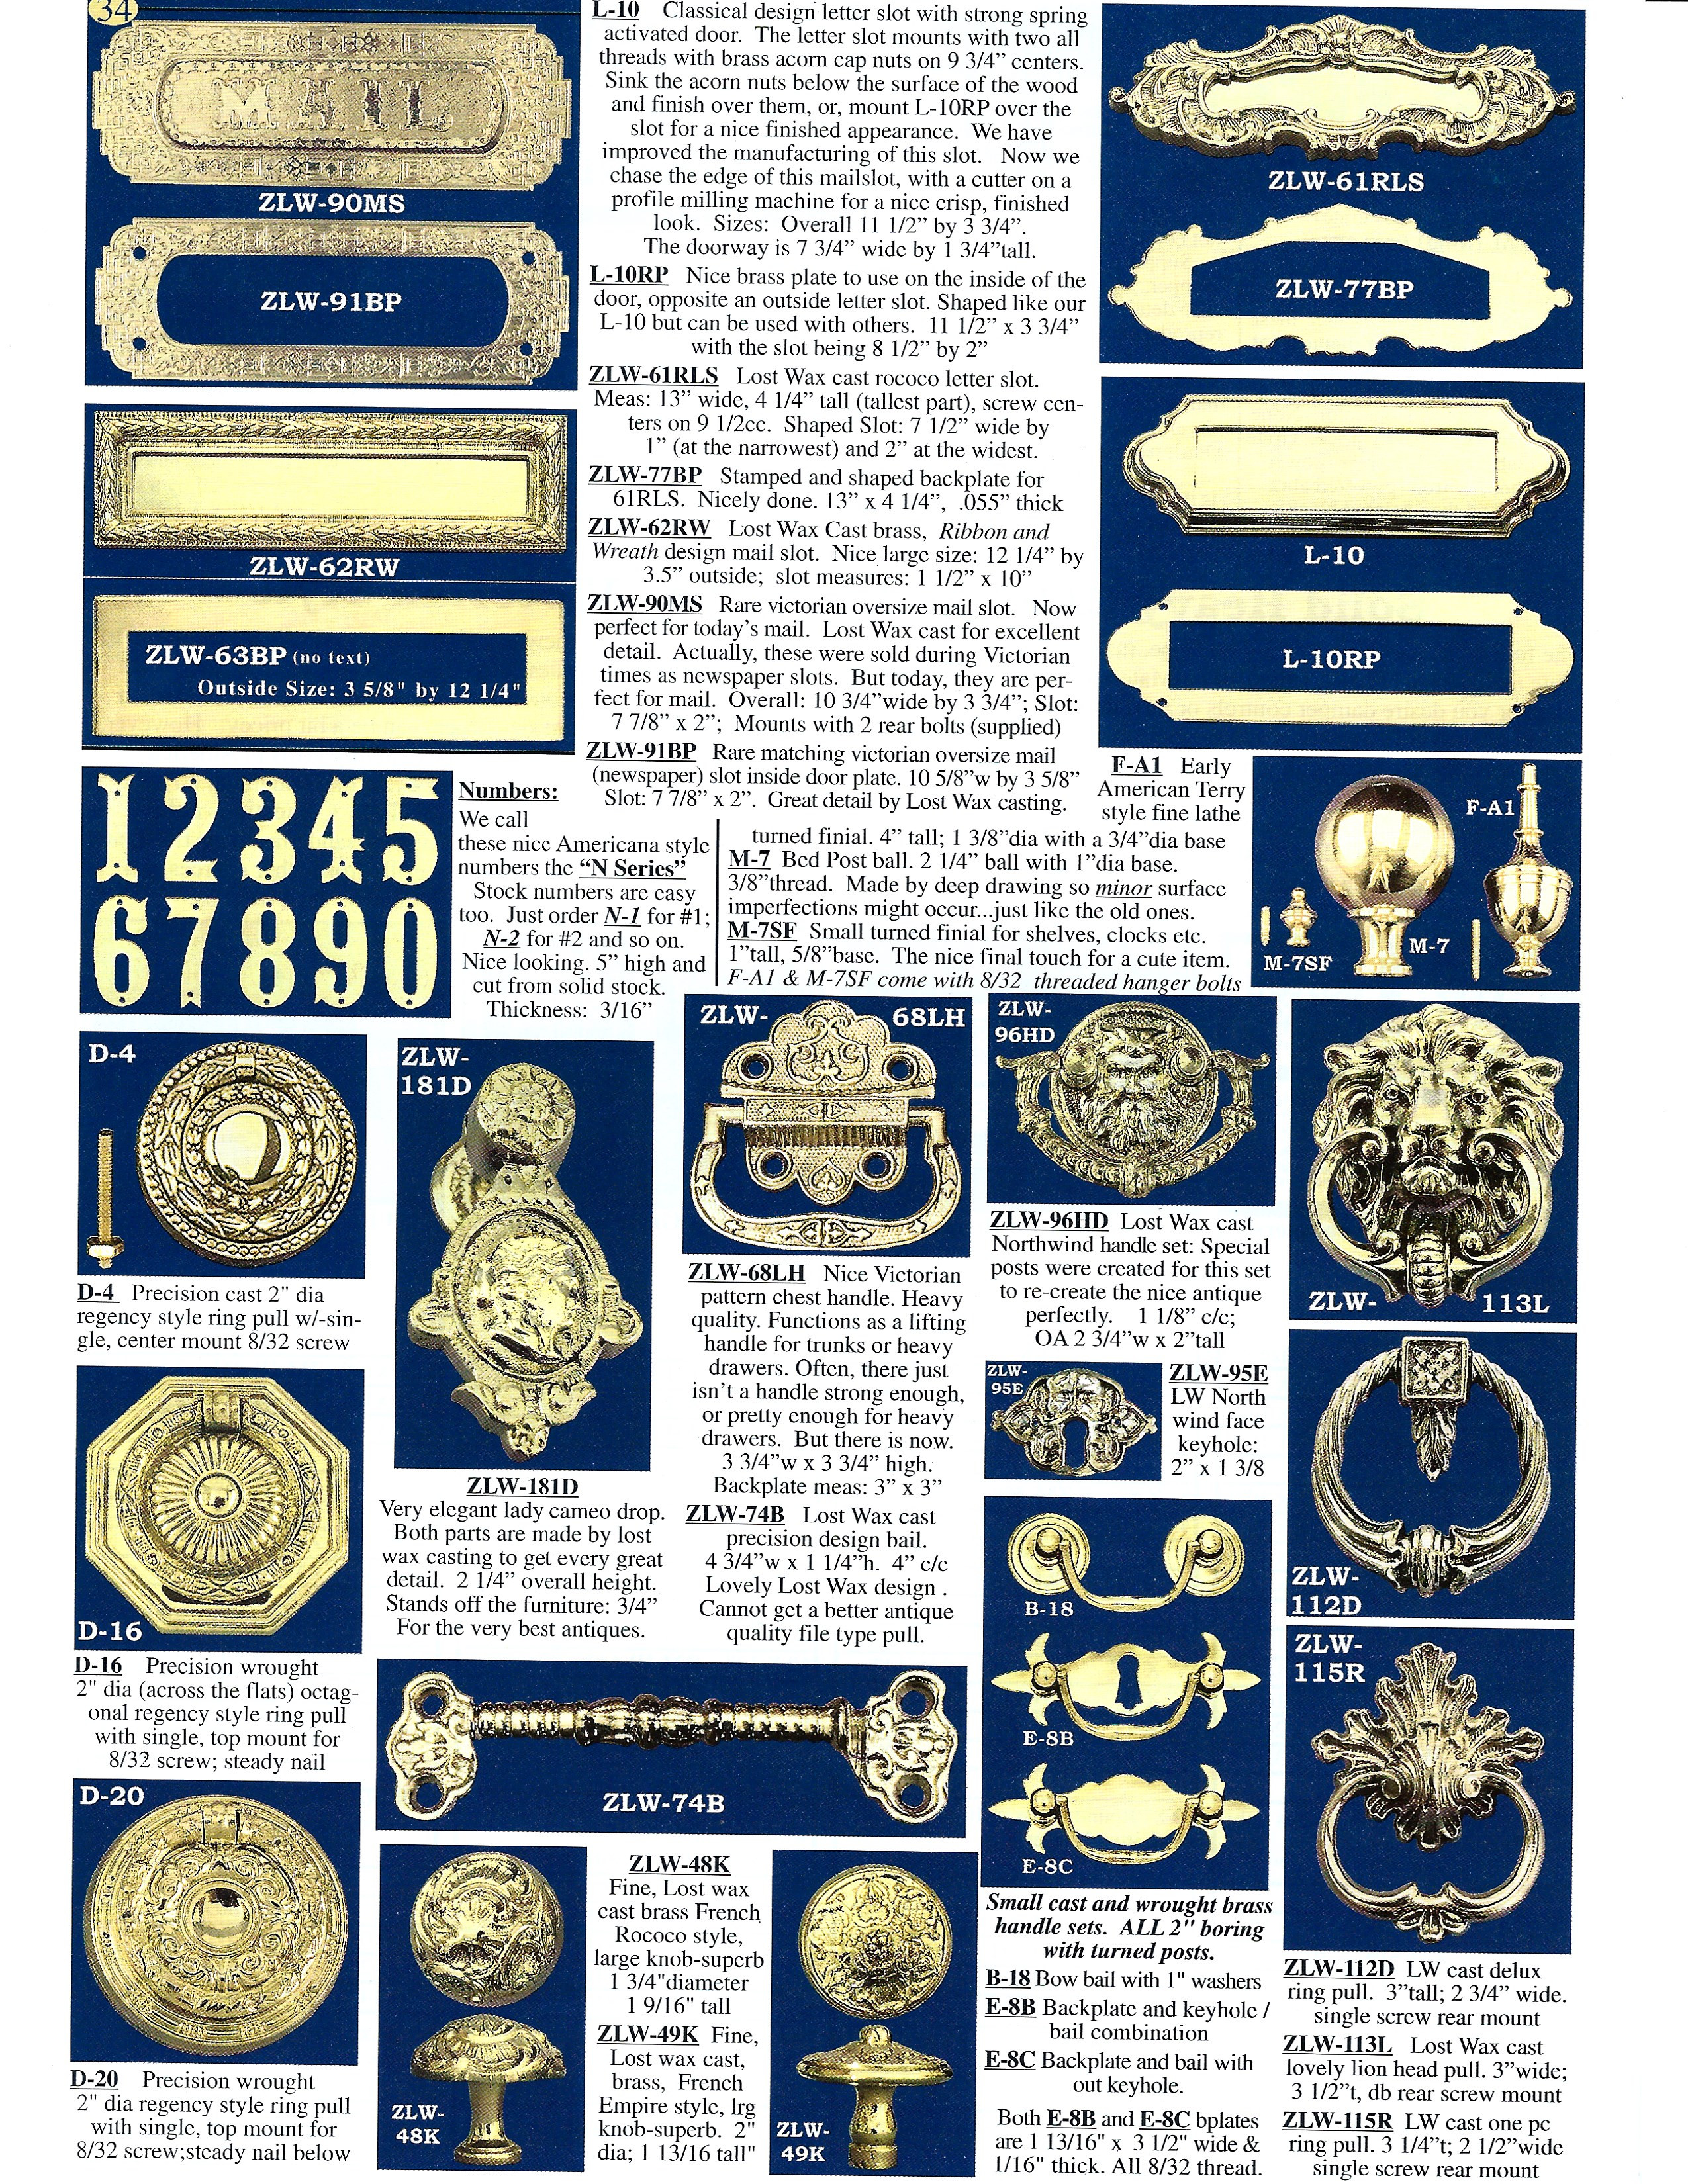 Catalog page 34